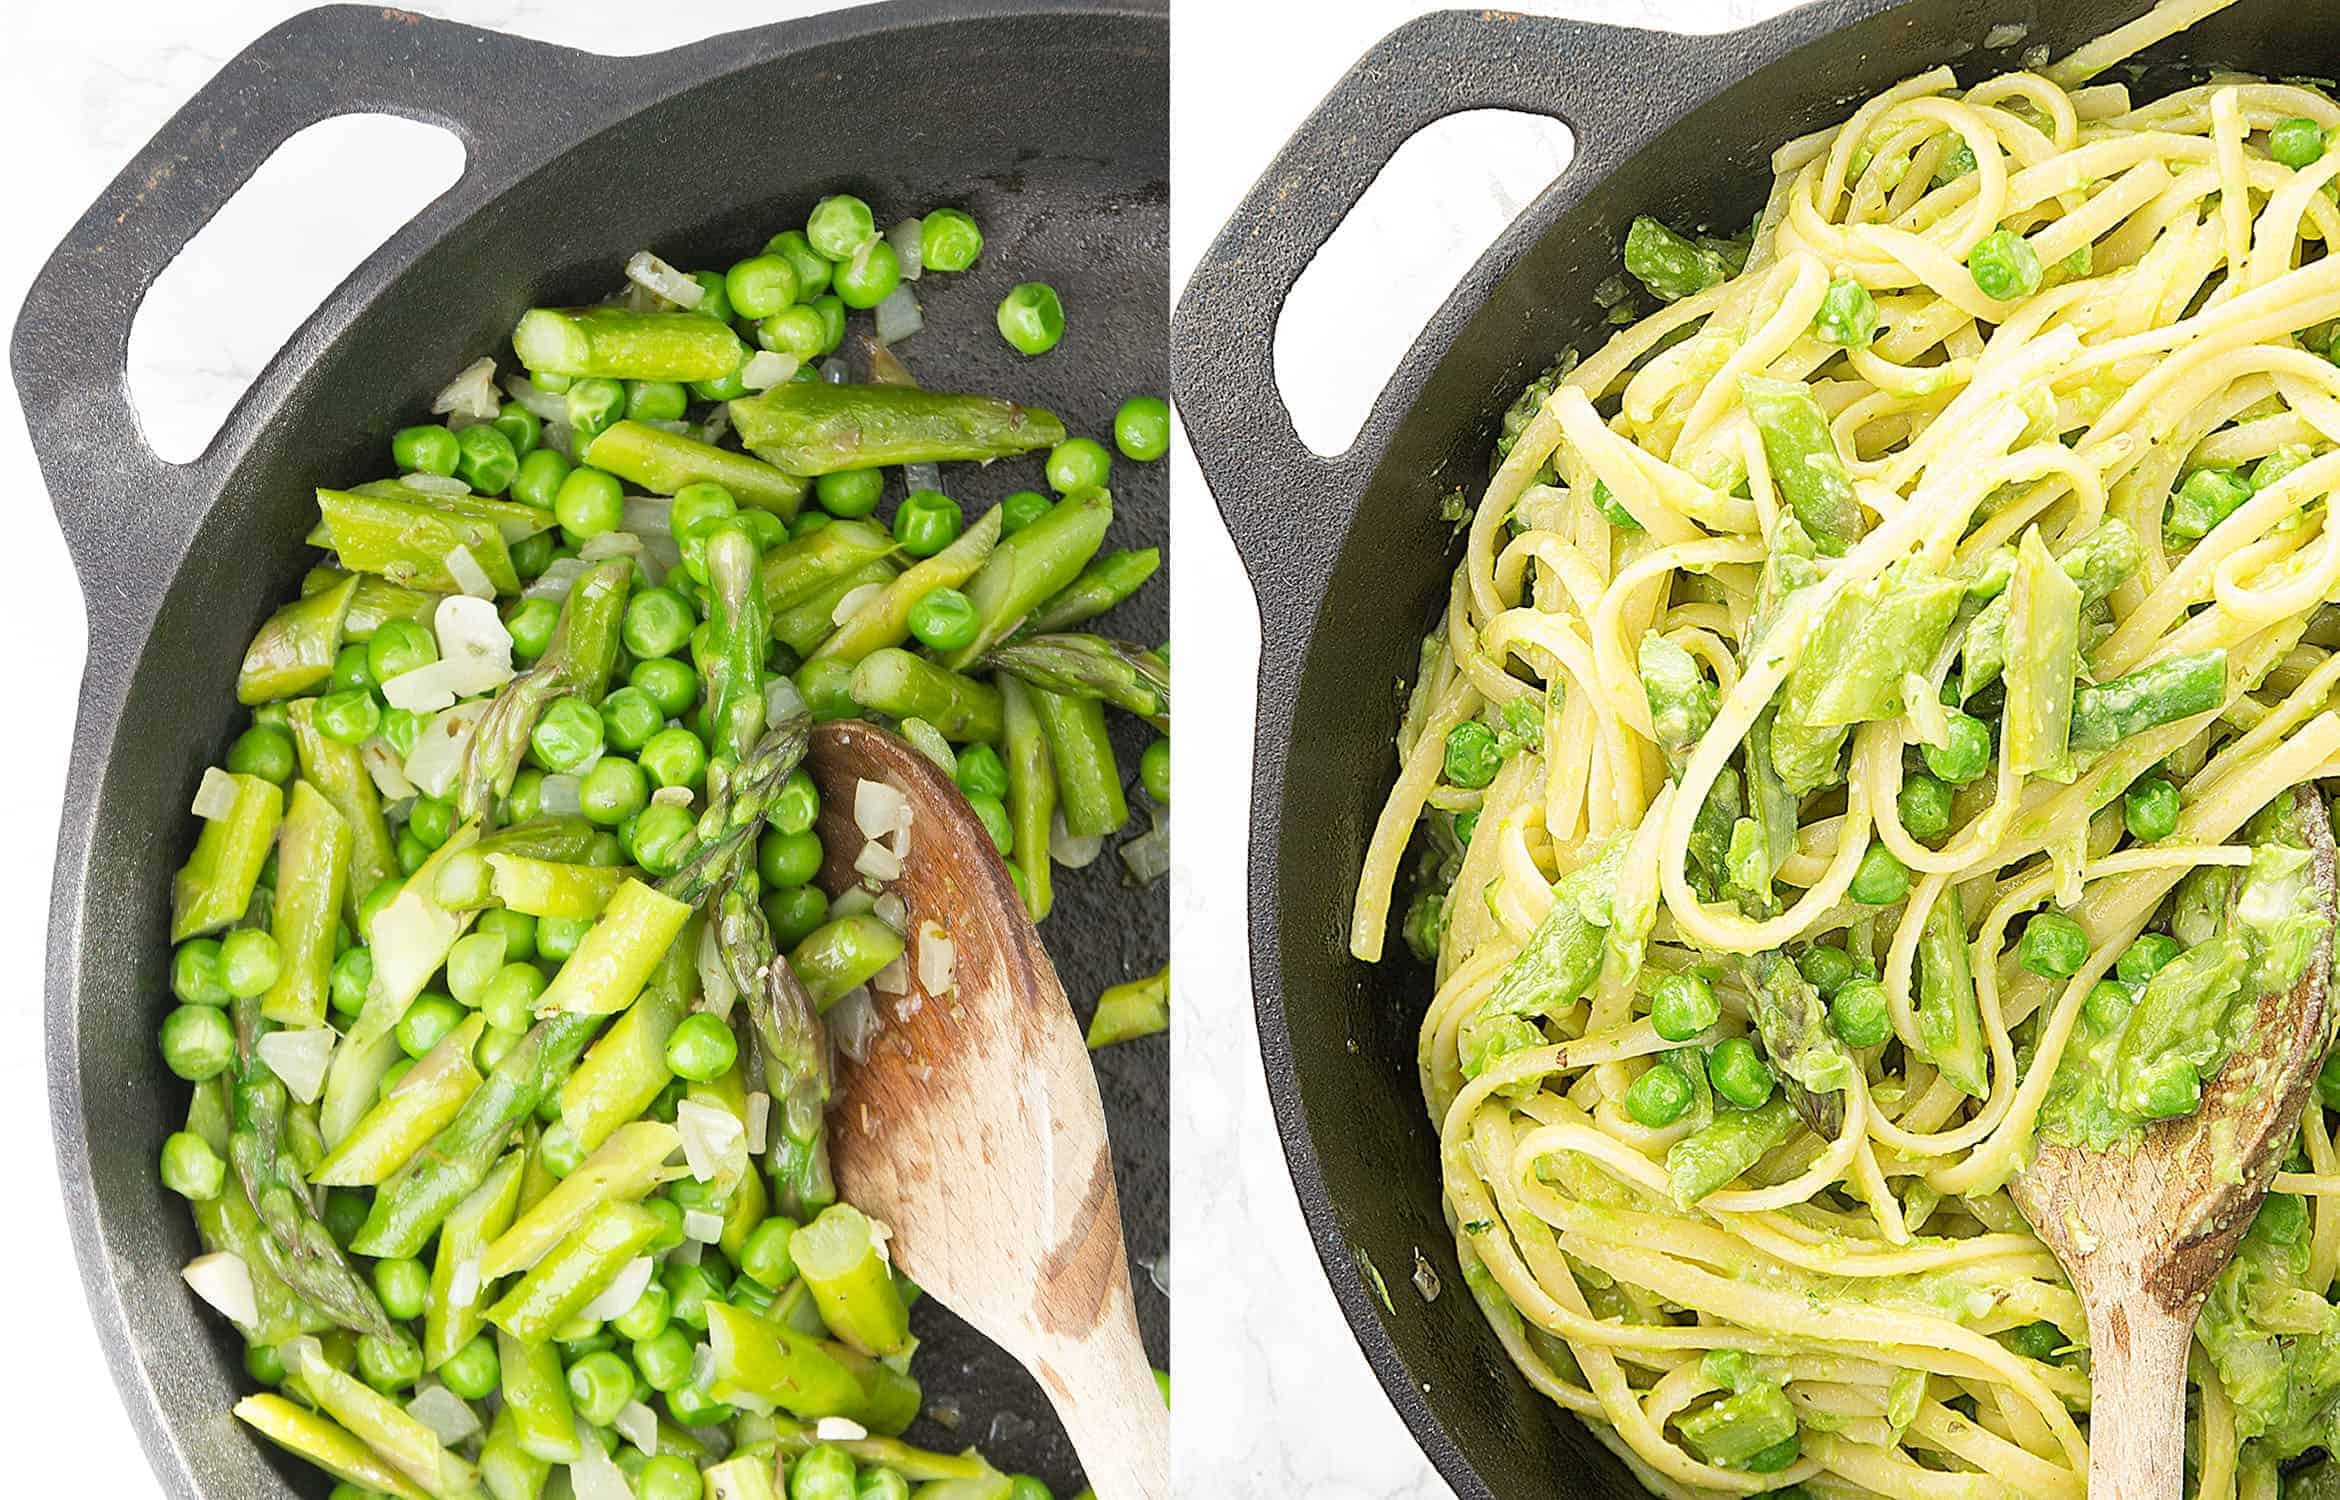 This creamy and succulent pea and asparagus pasta is easy, elegant and delicious. A light recipe perfect for a last minute spring gathering!